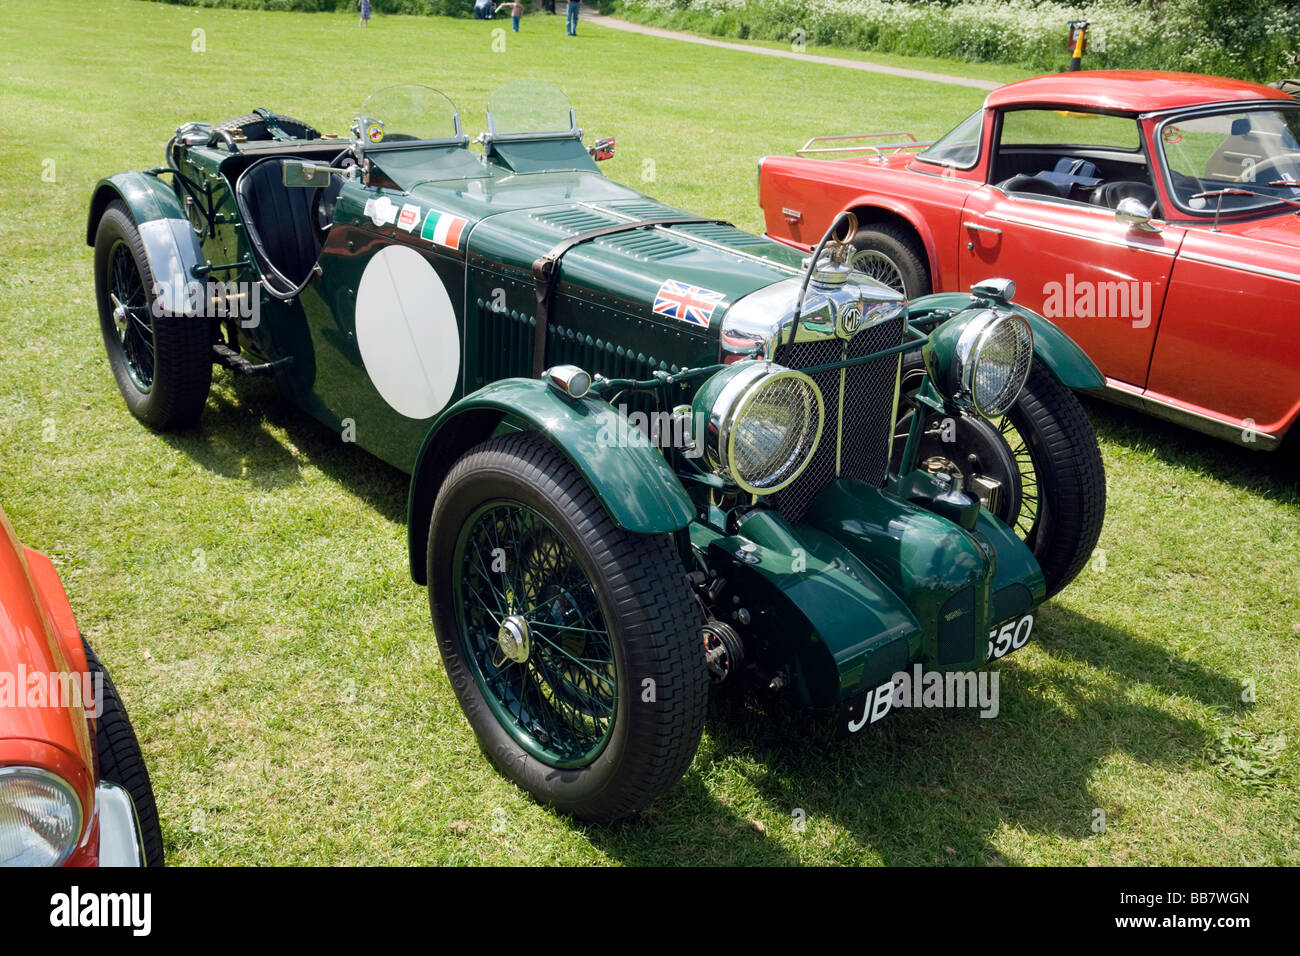 A Vintage Mg Sports Car At A Classic Car Rally Wallingford Stock